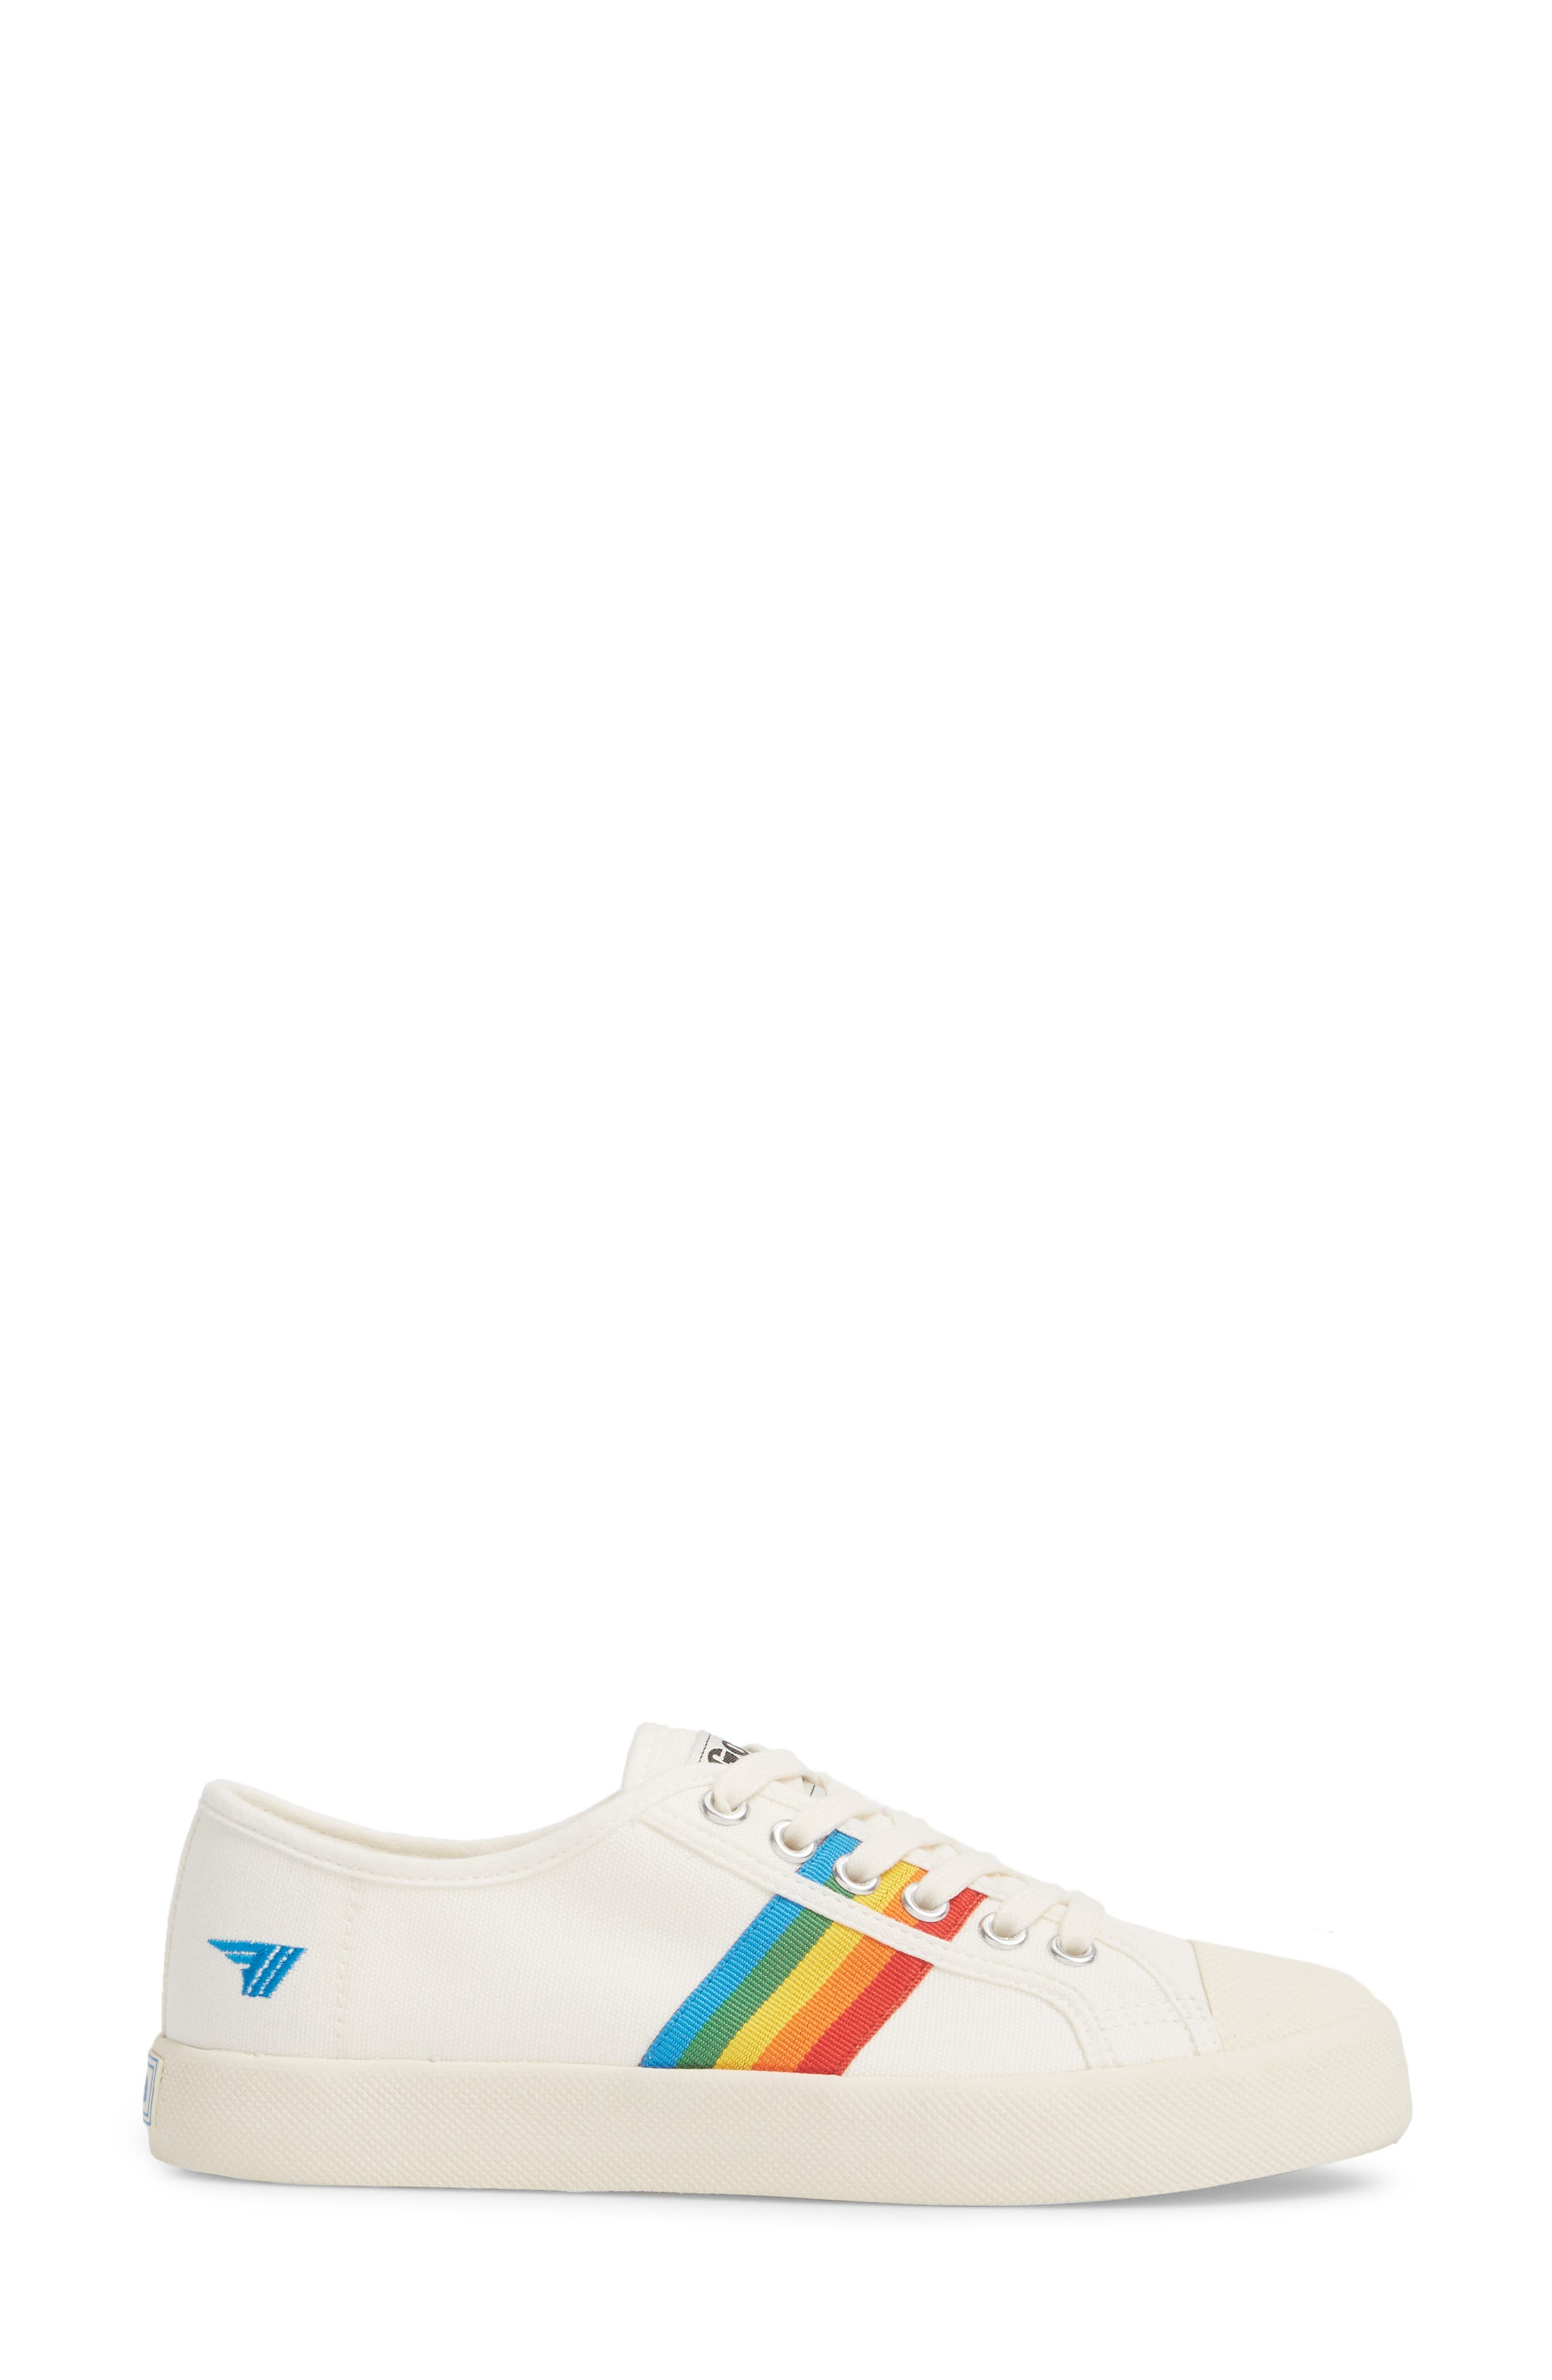 Coaster Rainbow Striped Sneaker,                             Alternate thumbnail 3, color,                             OFF WHITE/ MULTI CANVAS